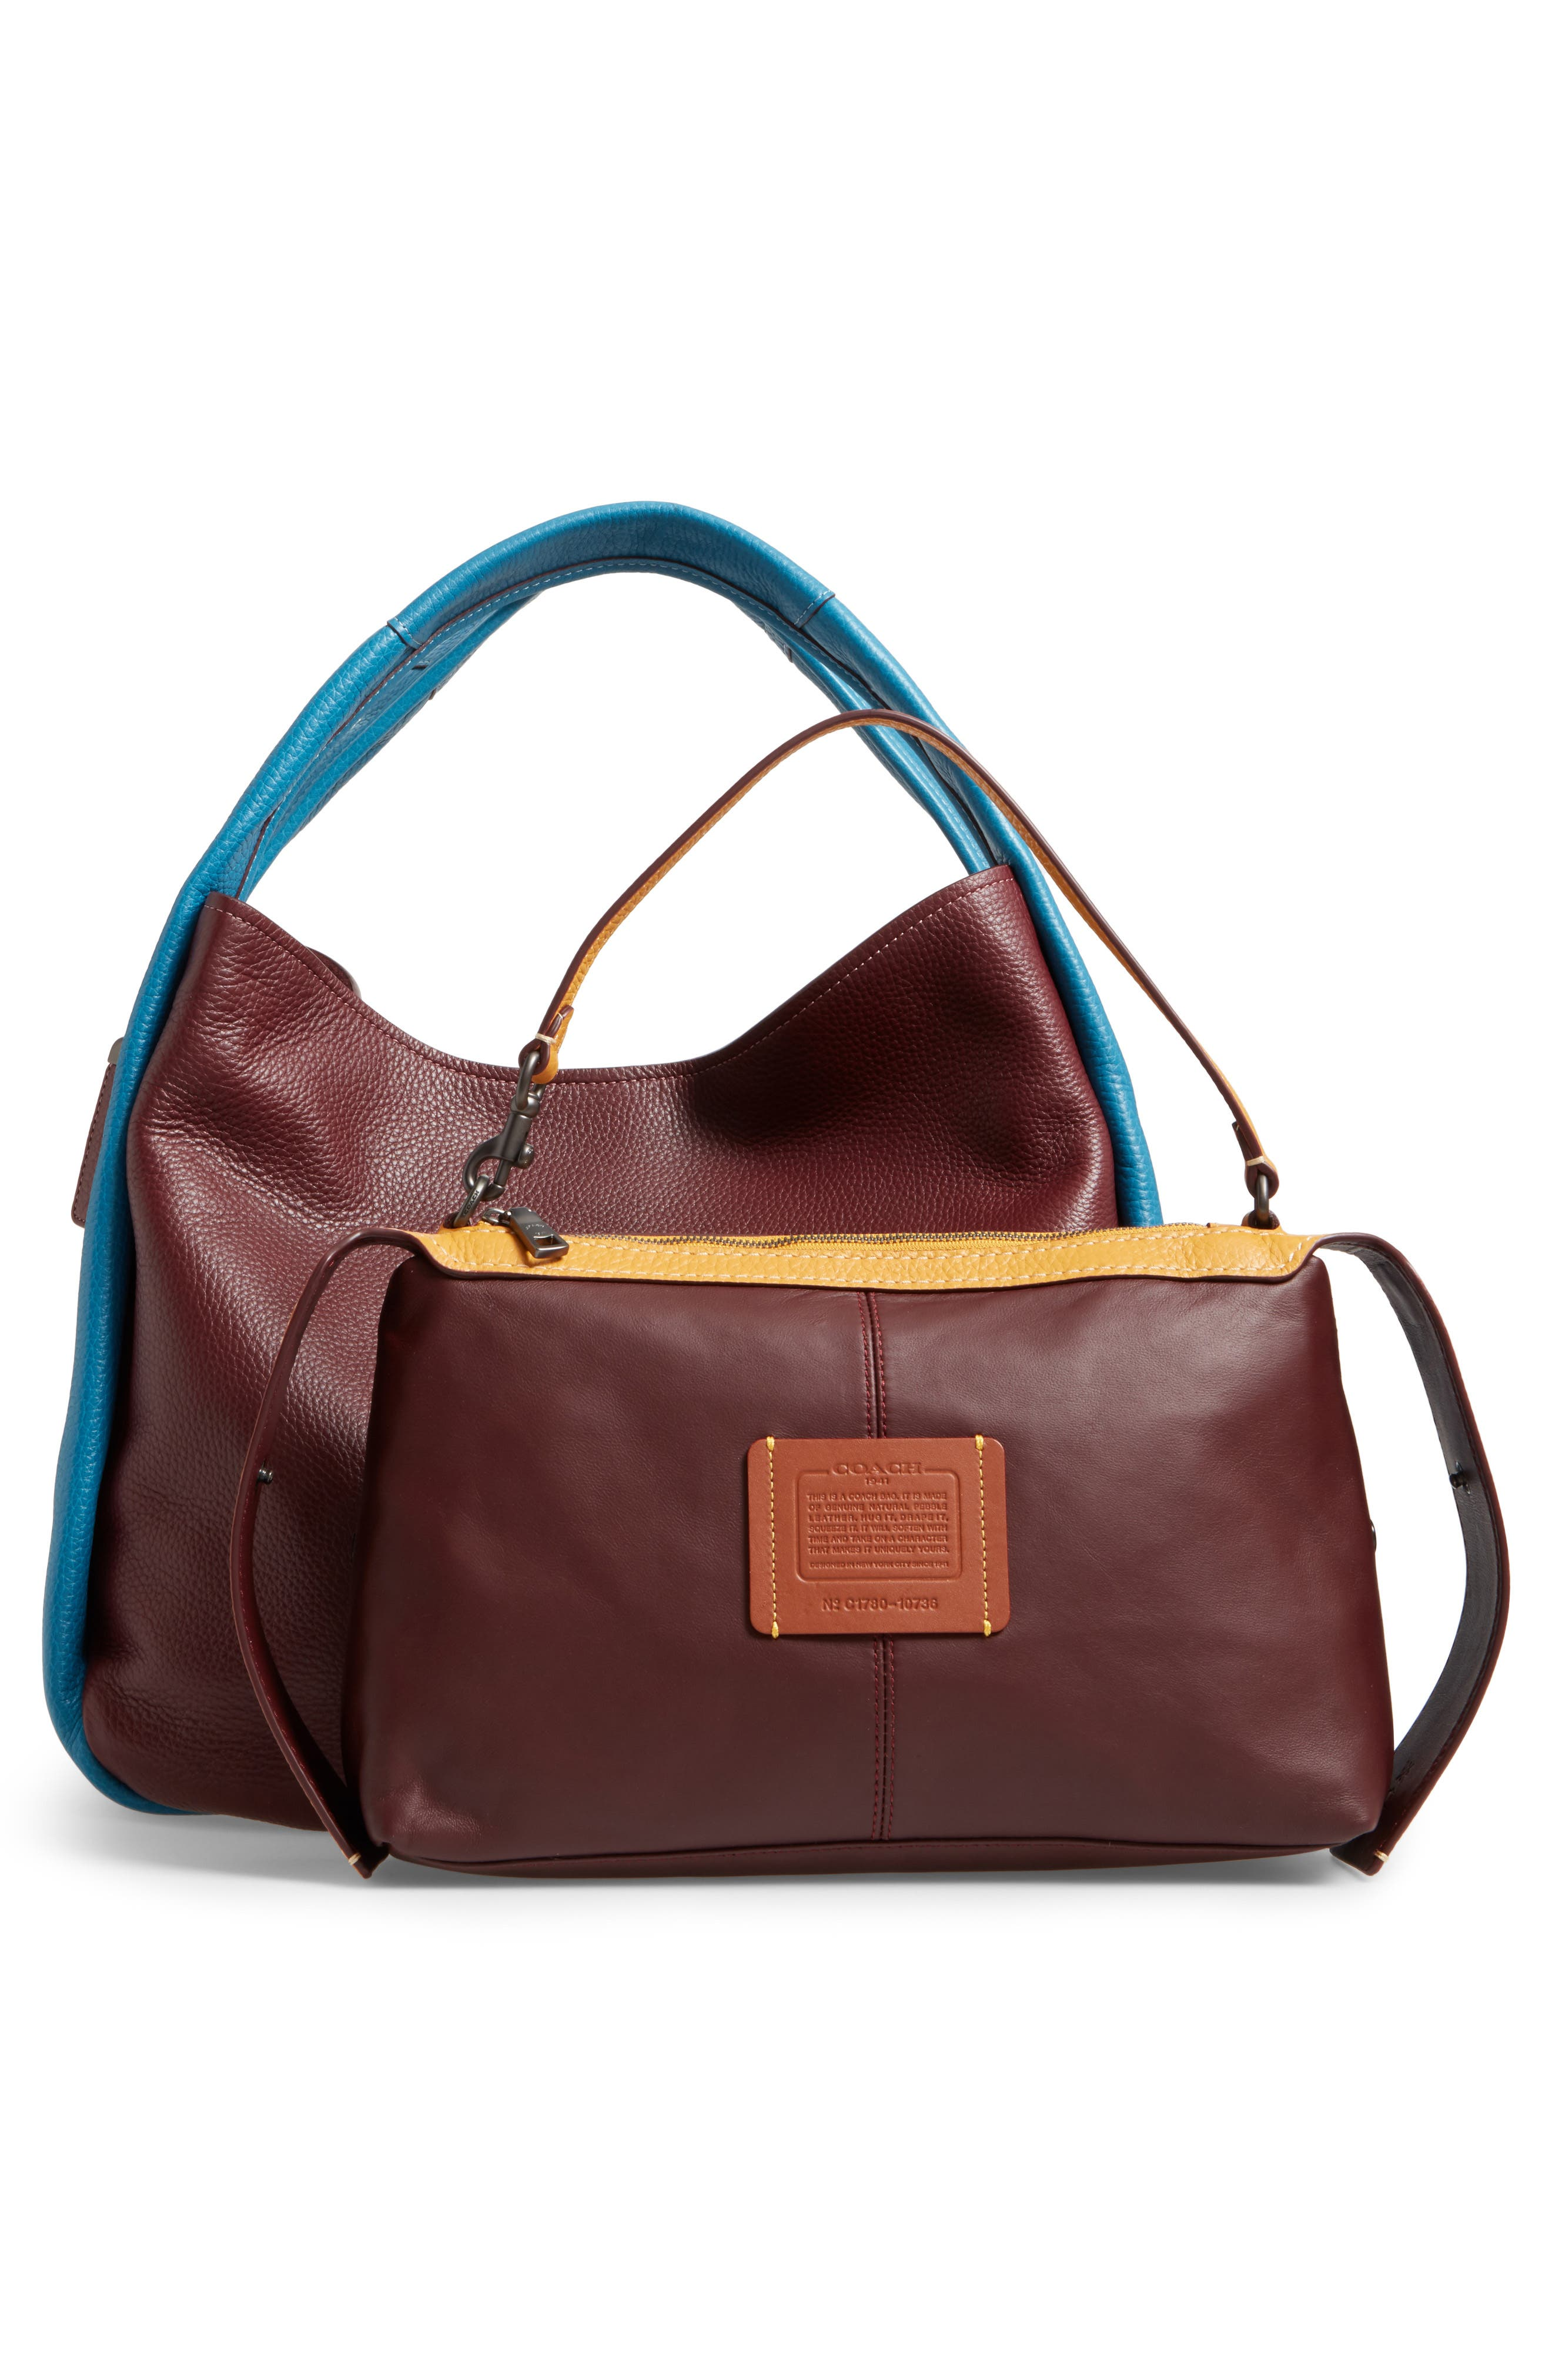 Colorblock Bandit Leather Hobo Bag,                             Alternate thumbnail 2, color,                             Goldenrod Multi